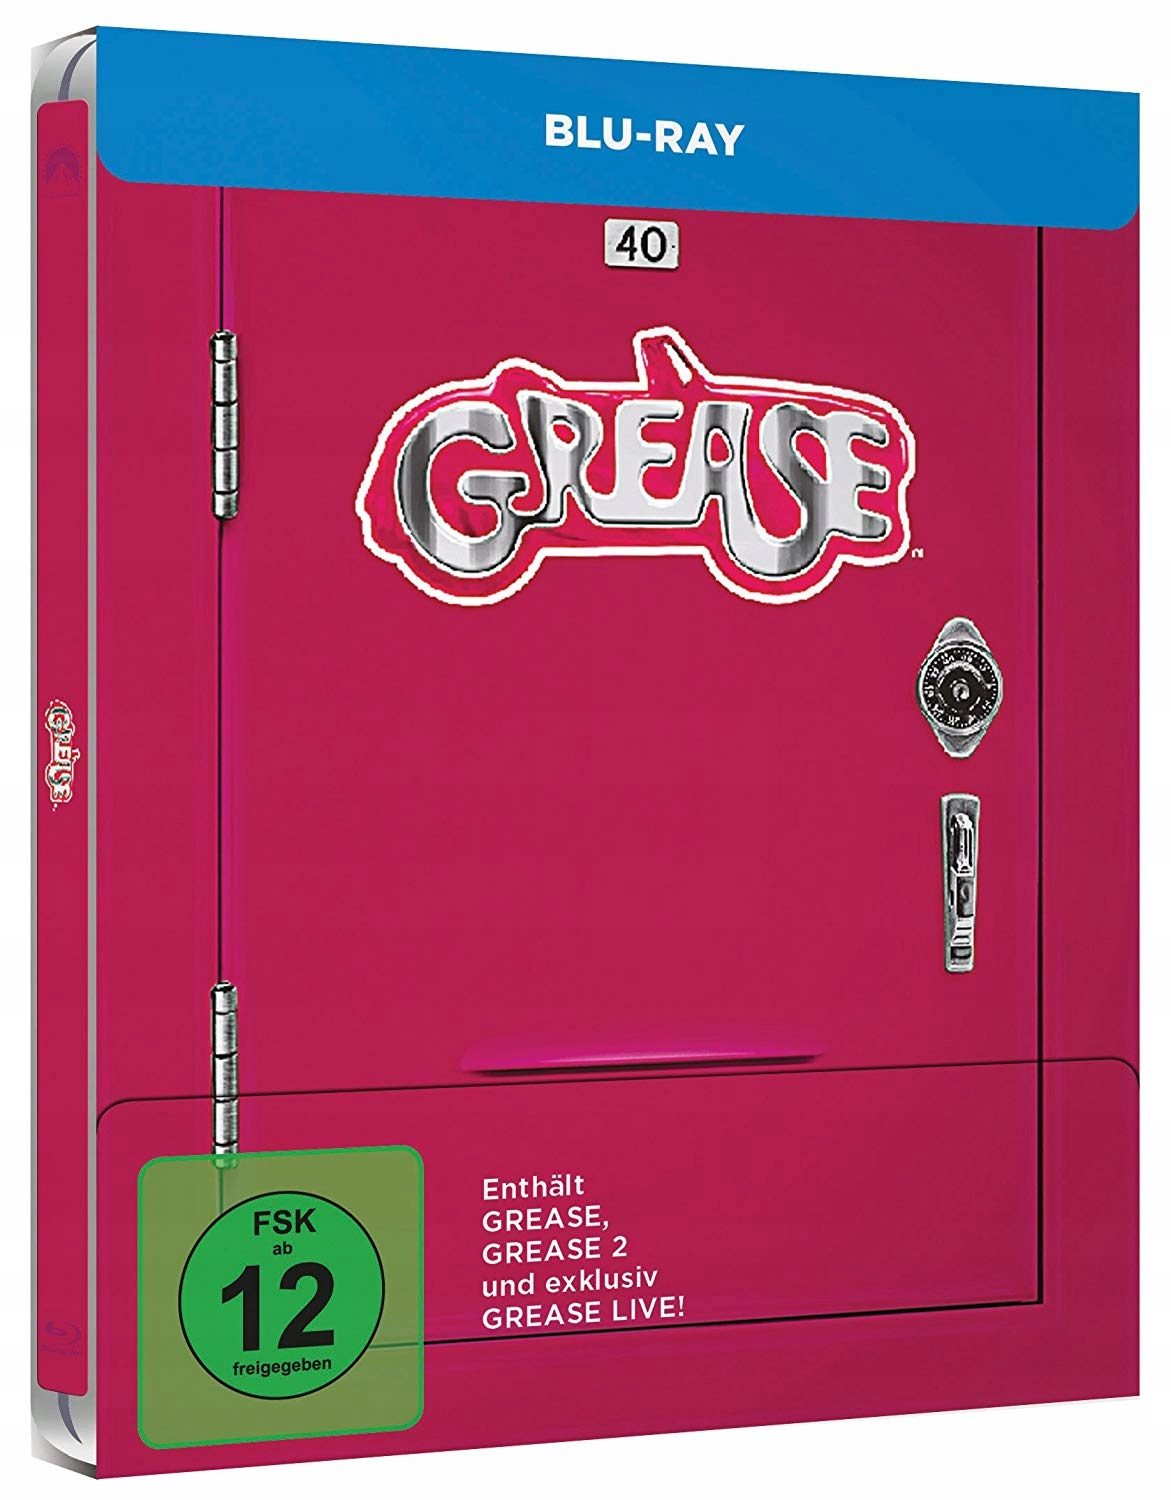 Grease+Grease 2+Grease Live! PL Blu-ray STEELBOOK